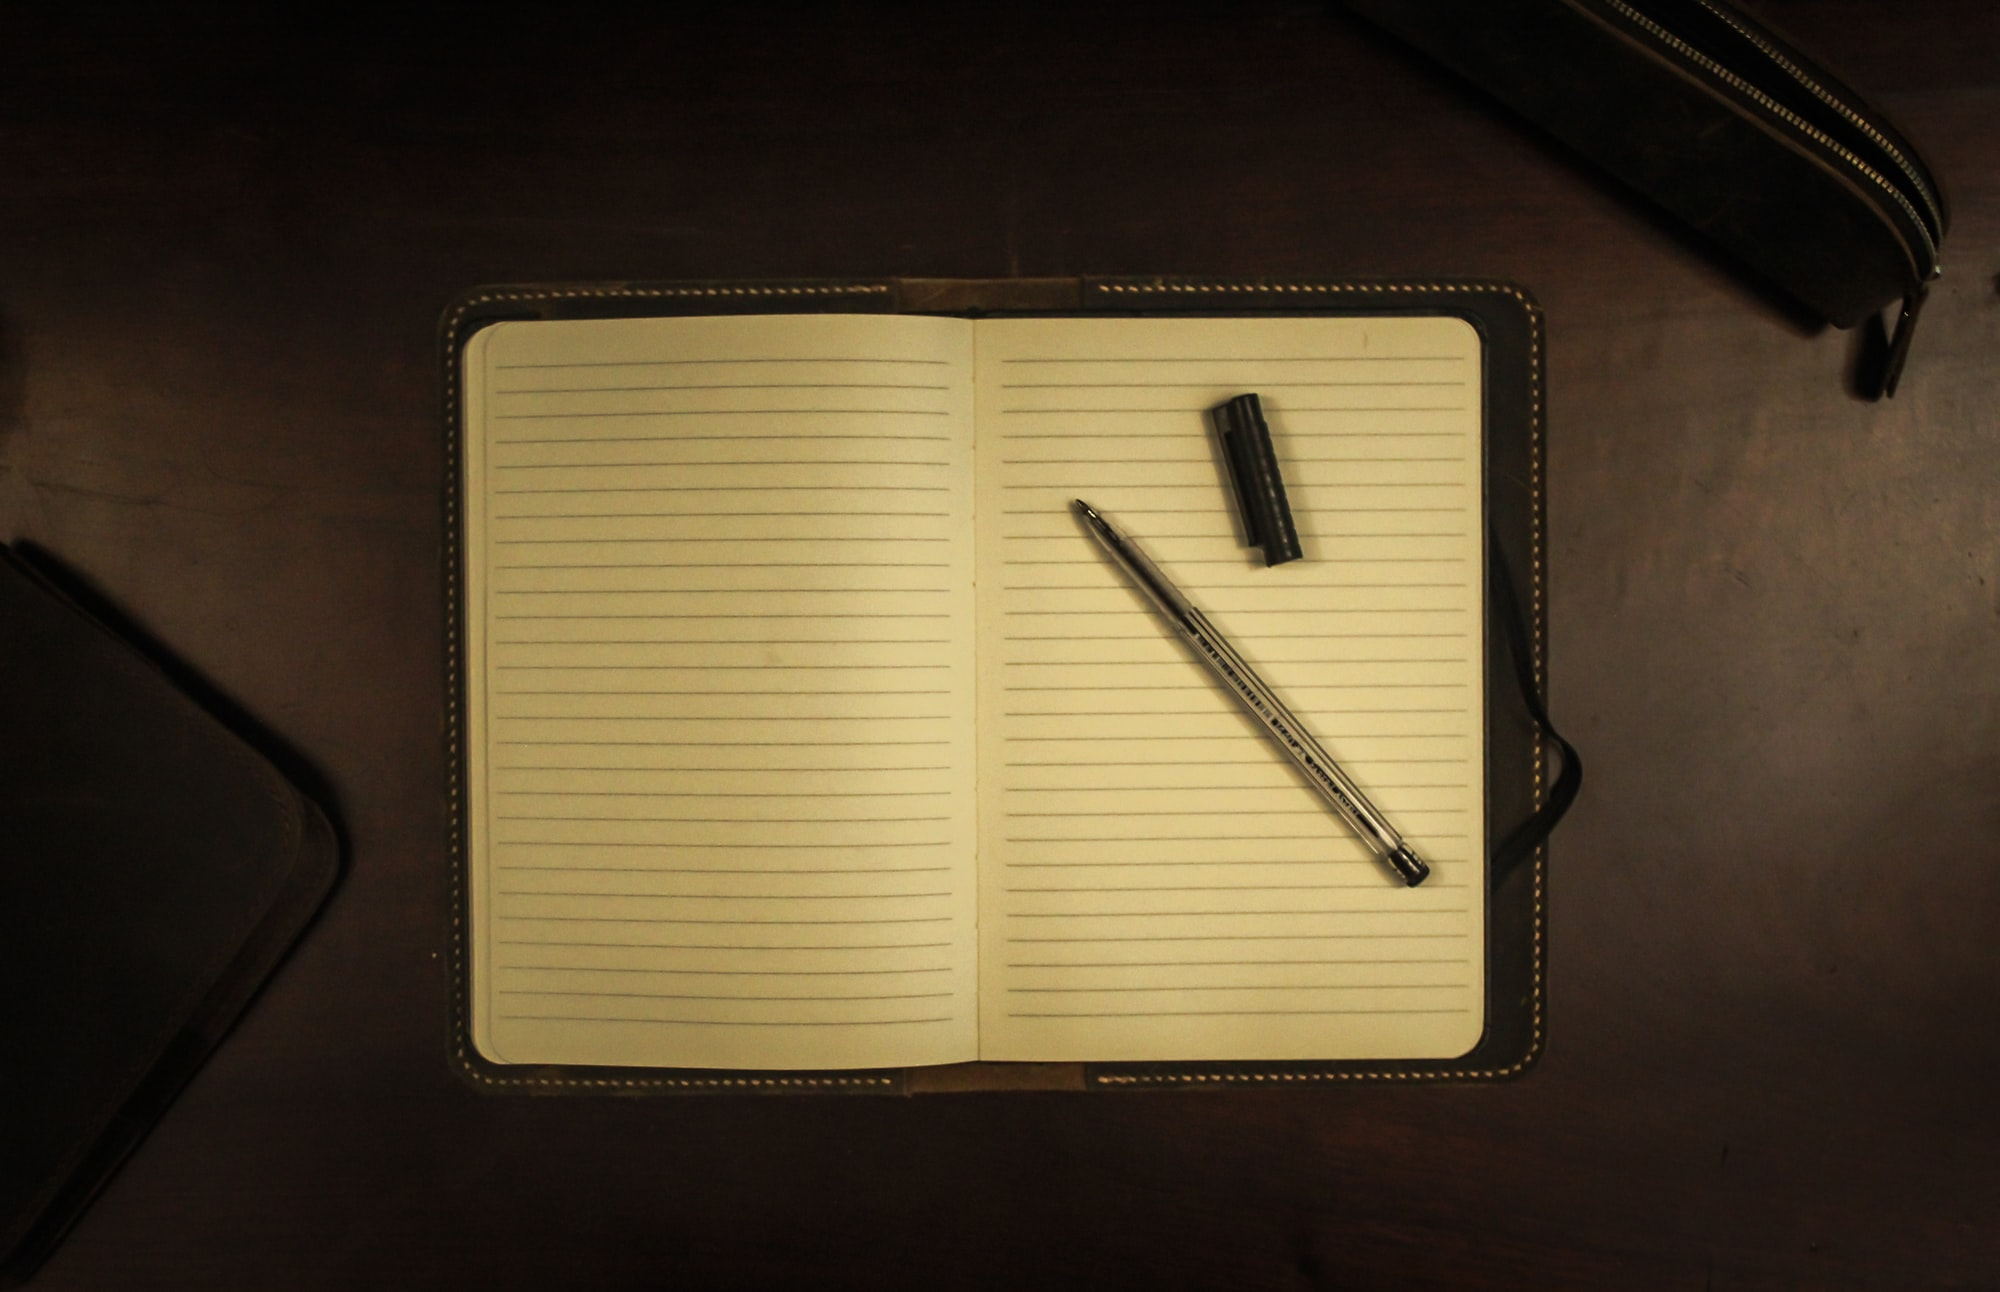 I Kept a Weekly Journal for 4 Months and This Is What I Learned